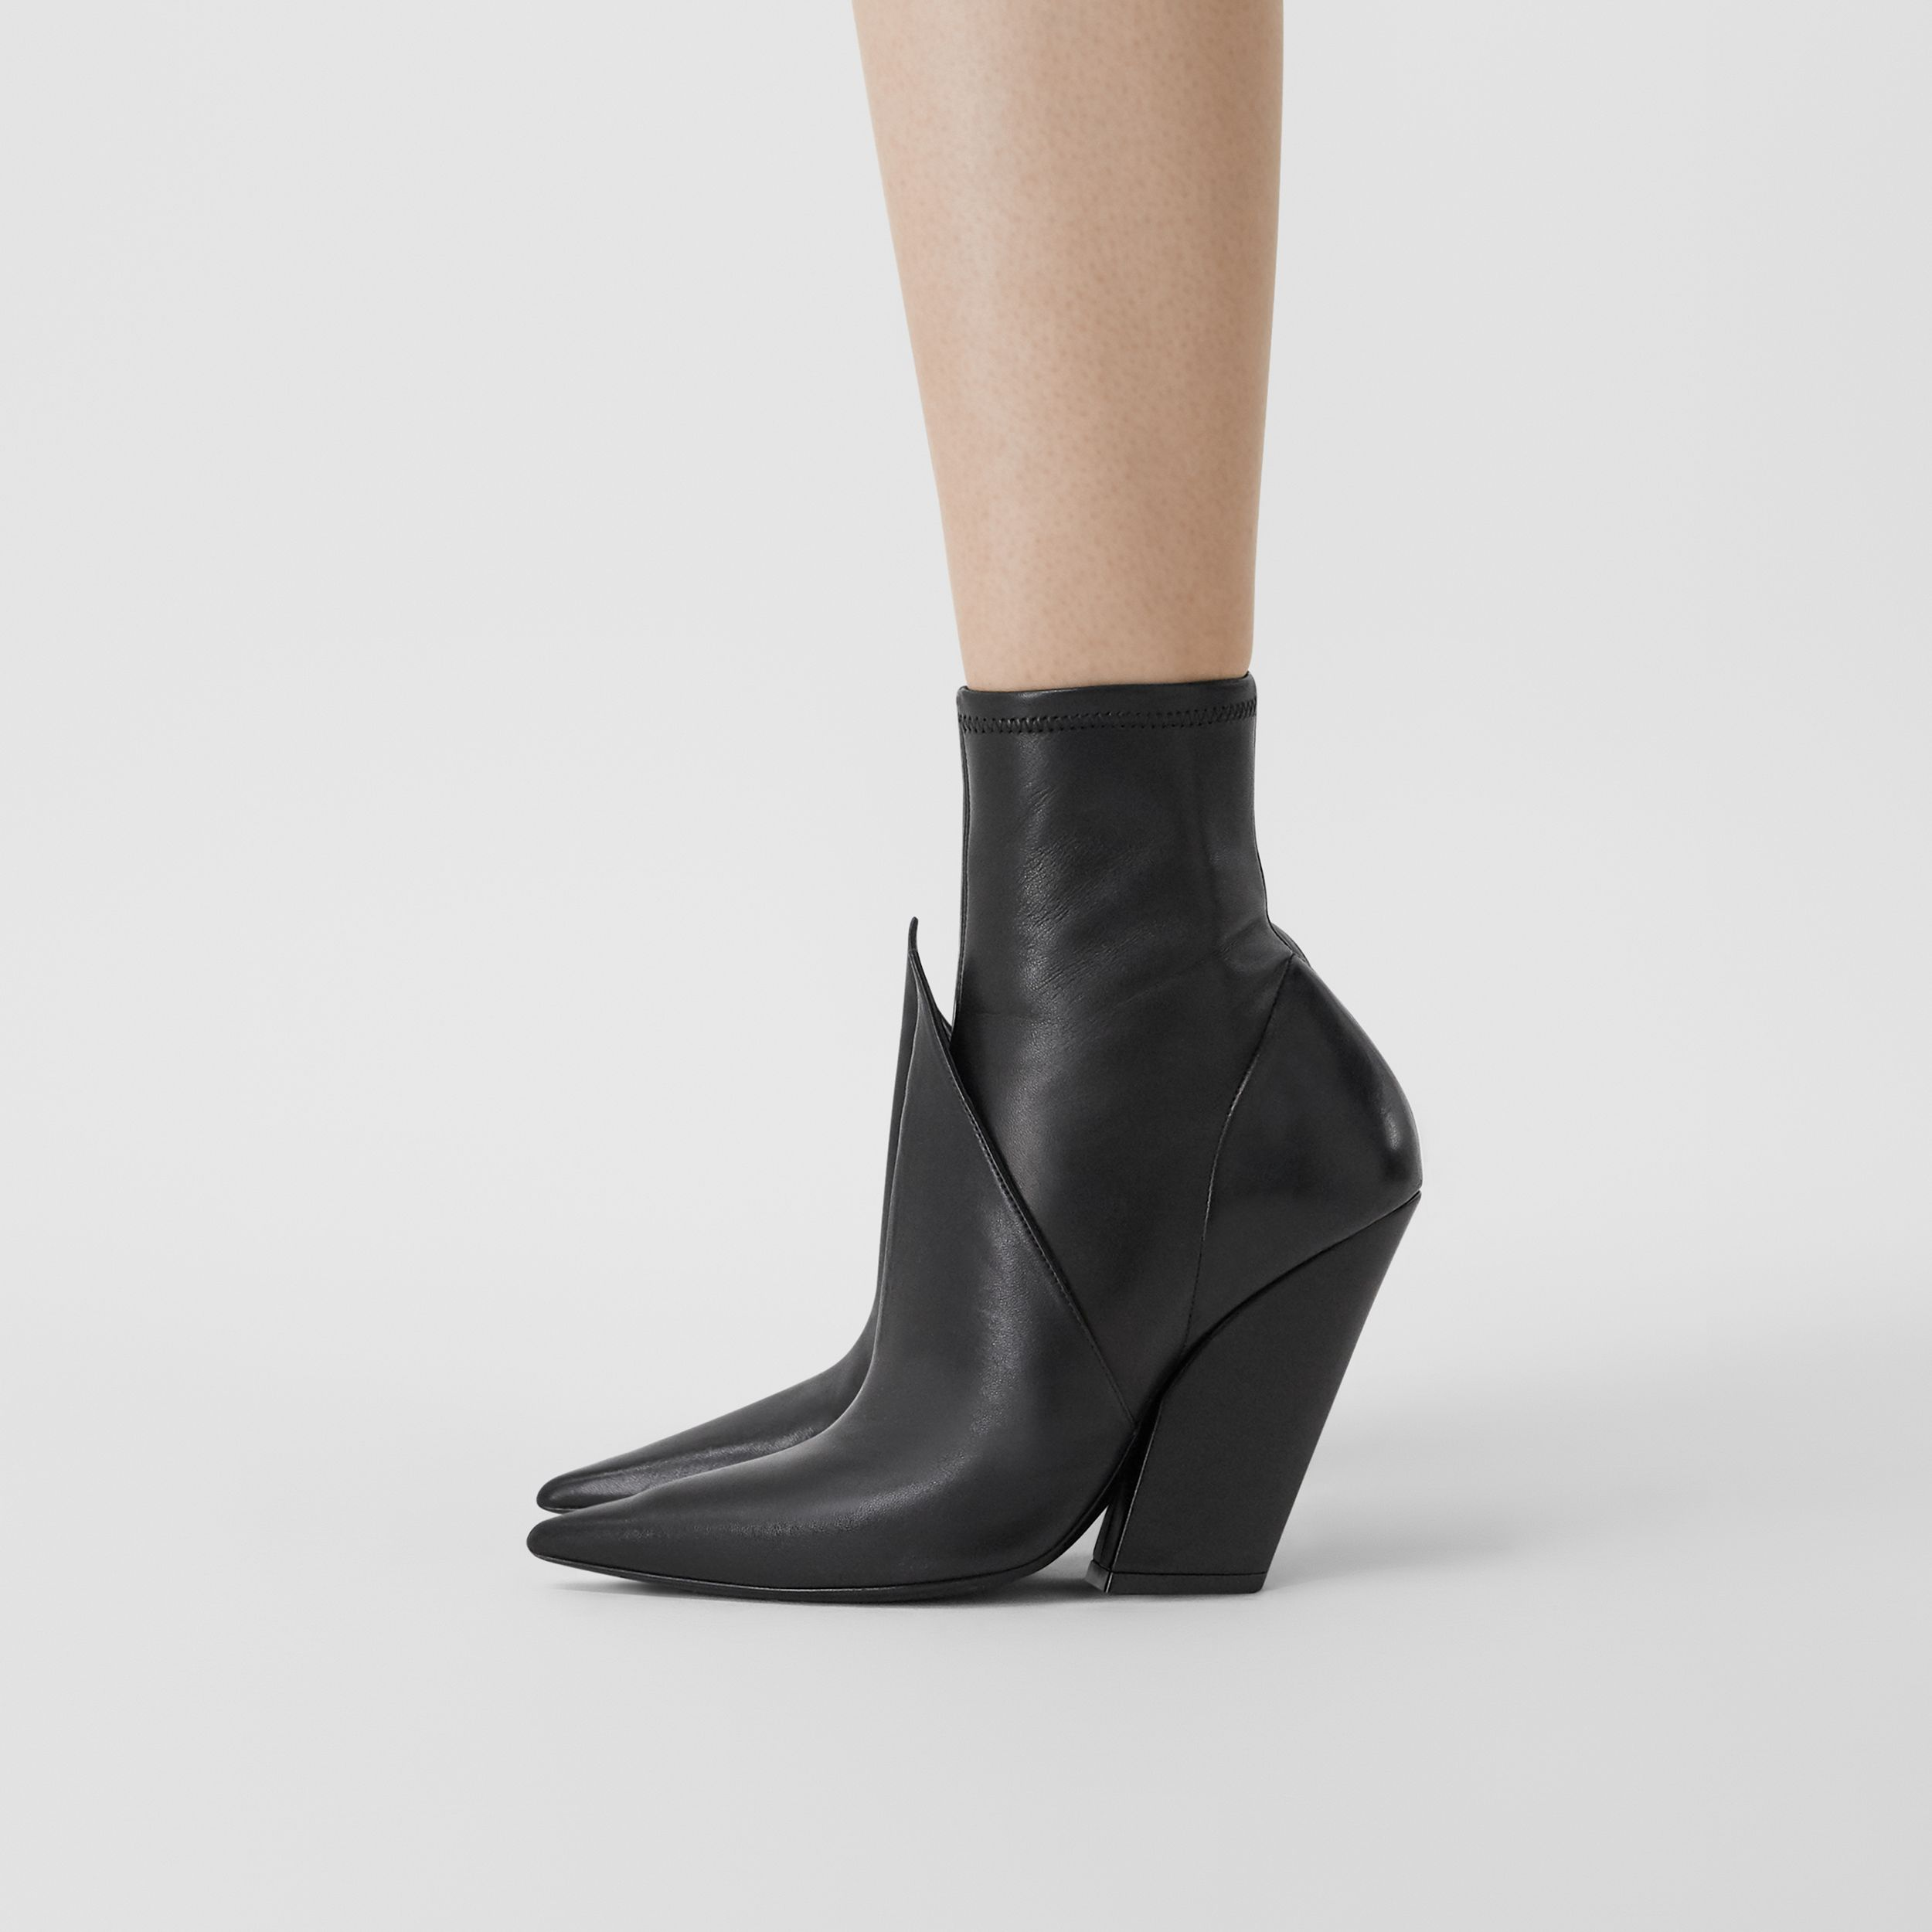 Panelled Lambskin Ankle Boots in Black - Women | Burberry United Kingdom - 3